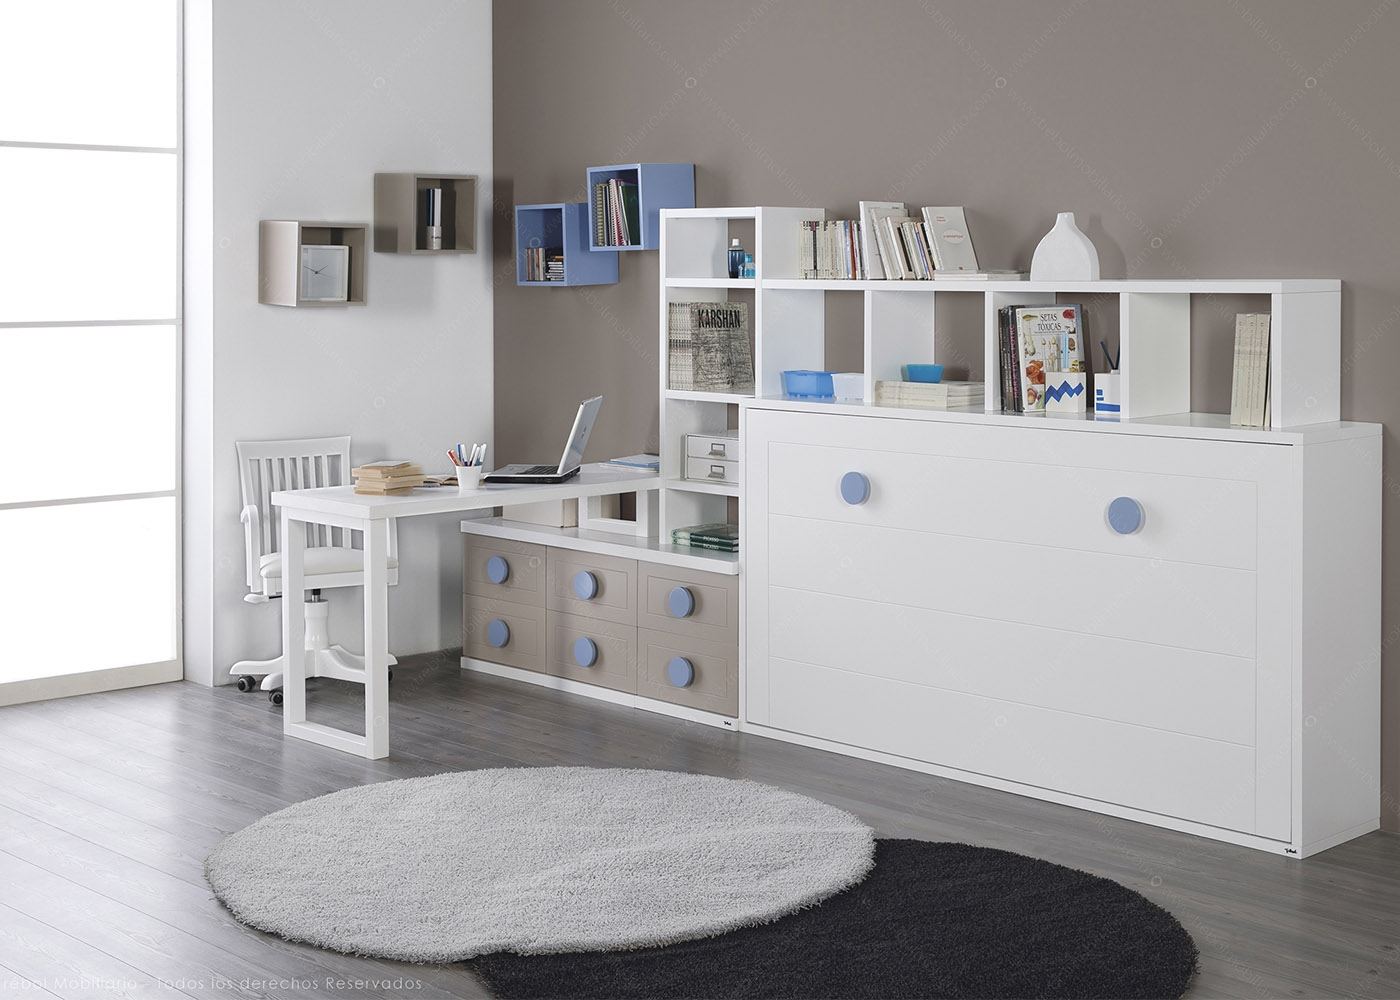 AMENAGEMENT DE STUDIO IDEAL GAIN DE PLACE AVEC LIT ESCAMOTABLE BUREAU ET  BIBLIOTHEQUE   URBAN ZONE